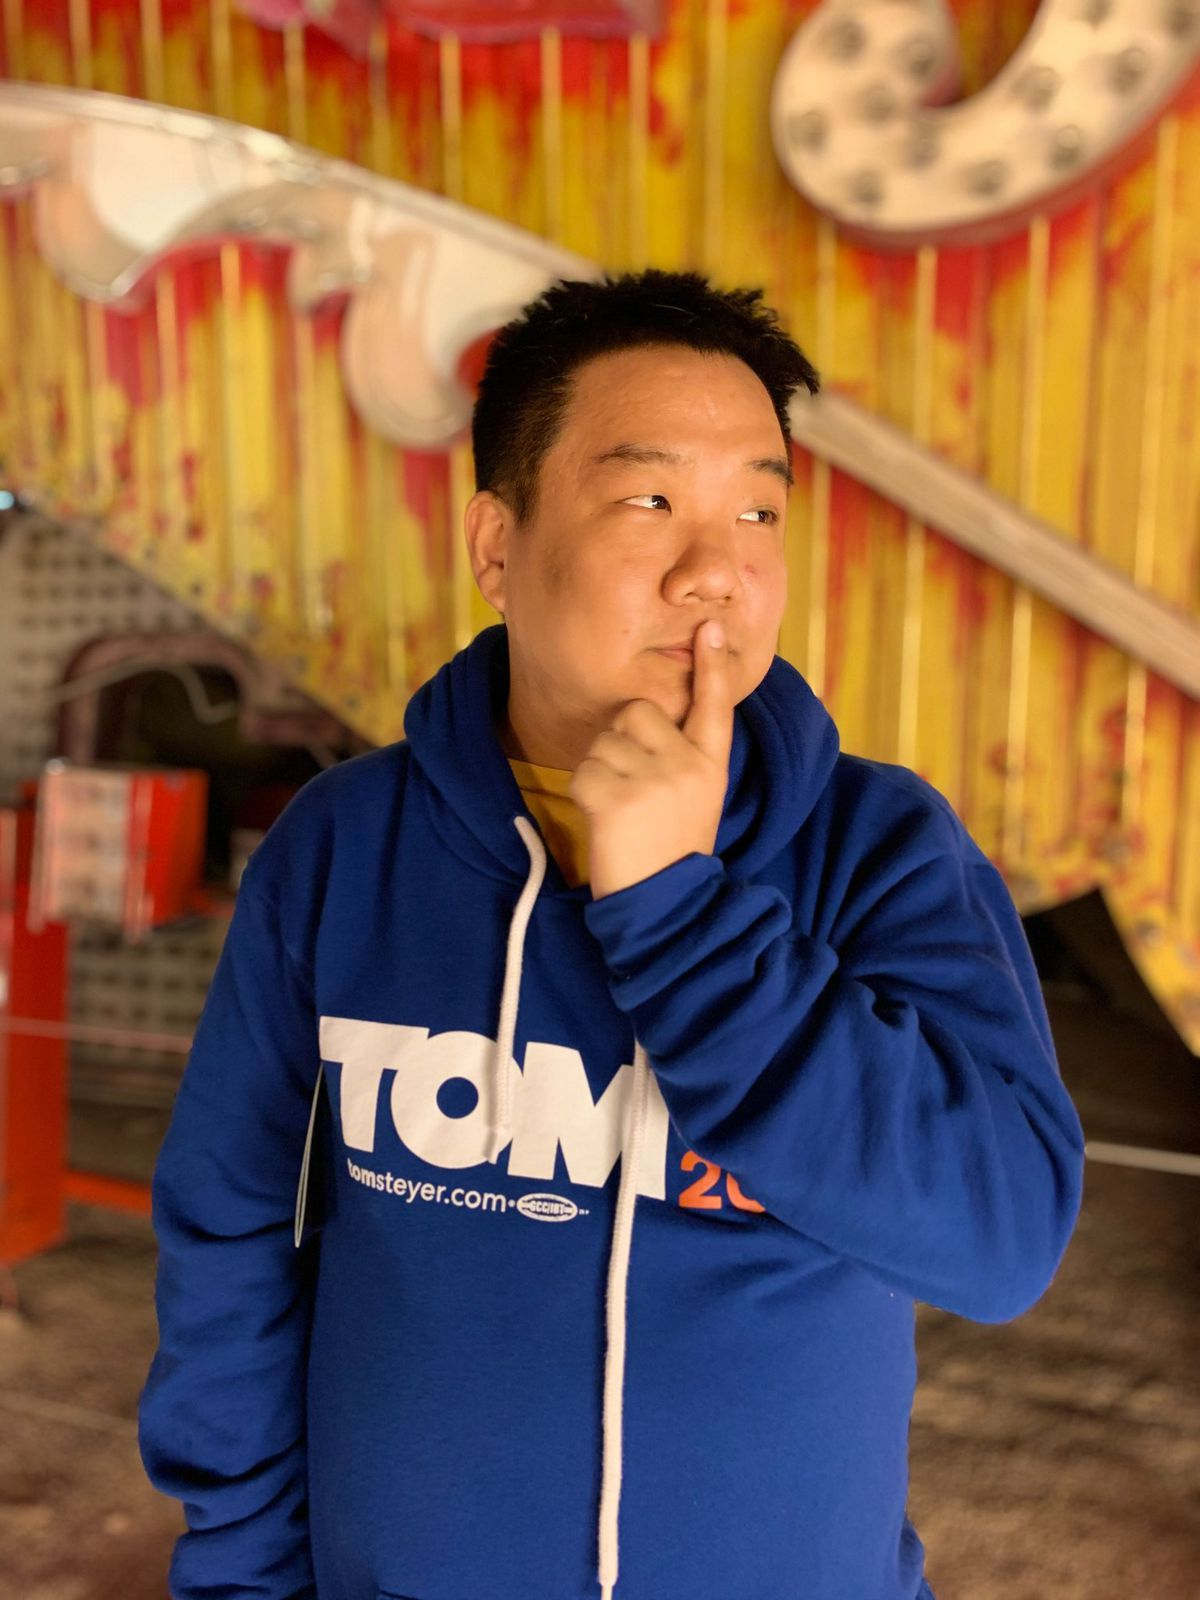 Tony Choi poses in a Tom Steyer 2020 sweatshirt.